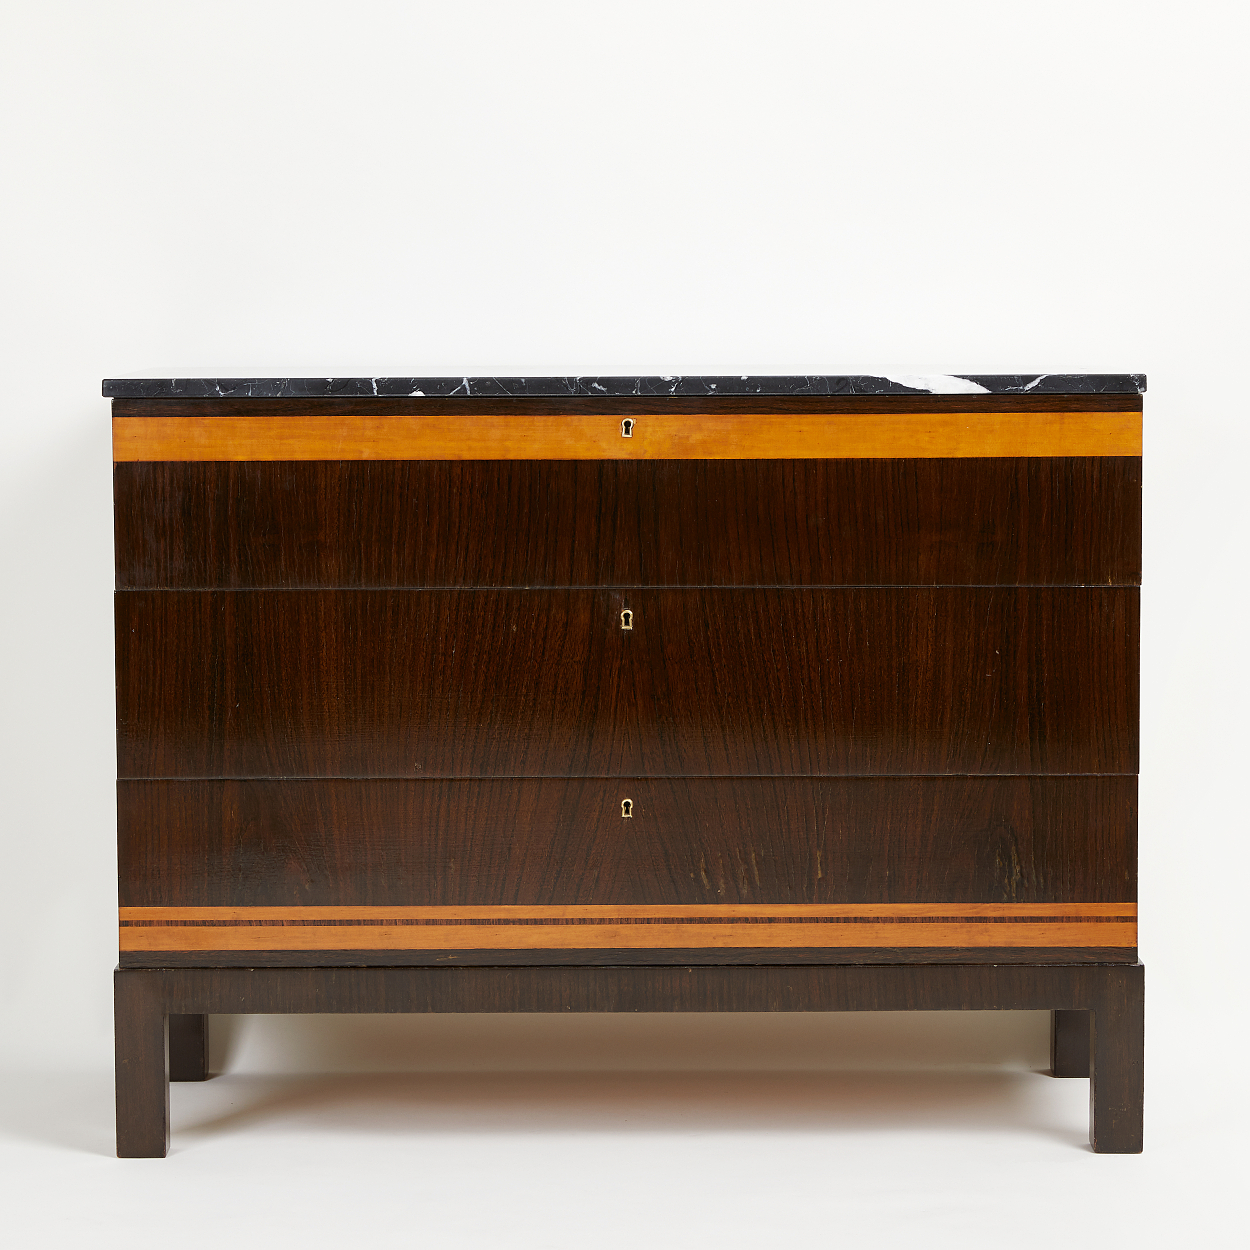 A chest of drawers, attributed to Otto Schulz